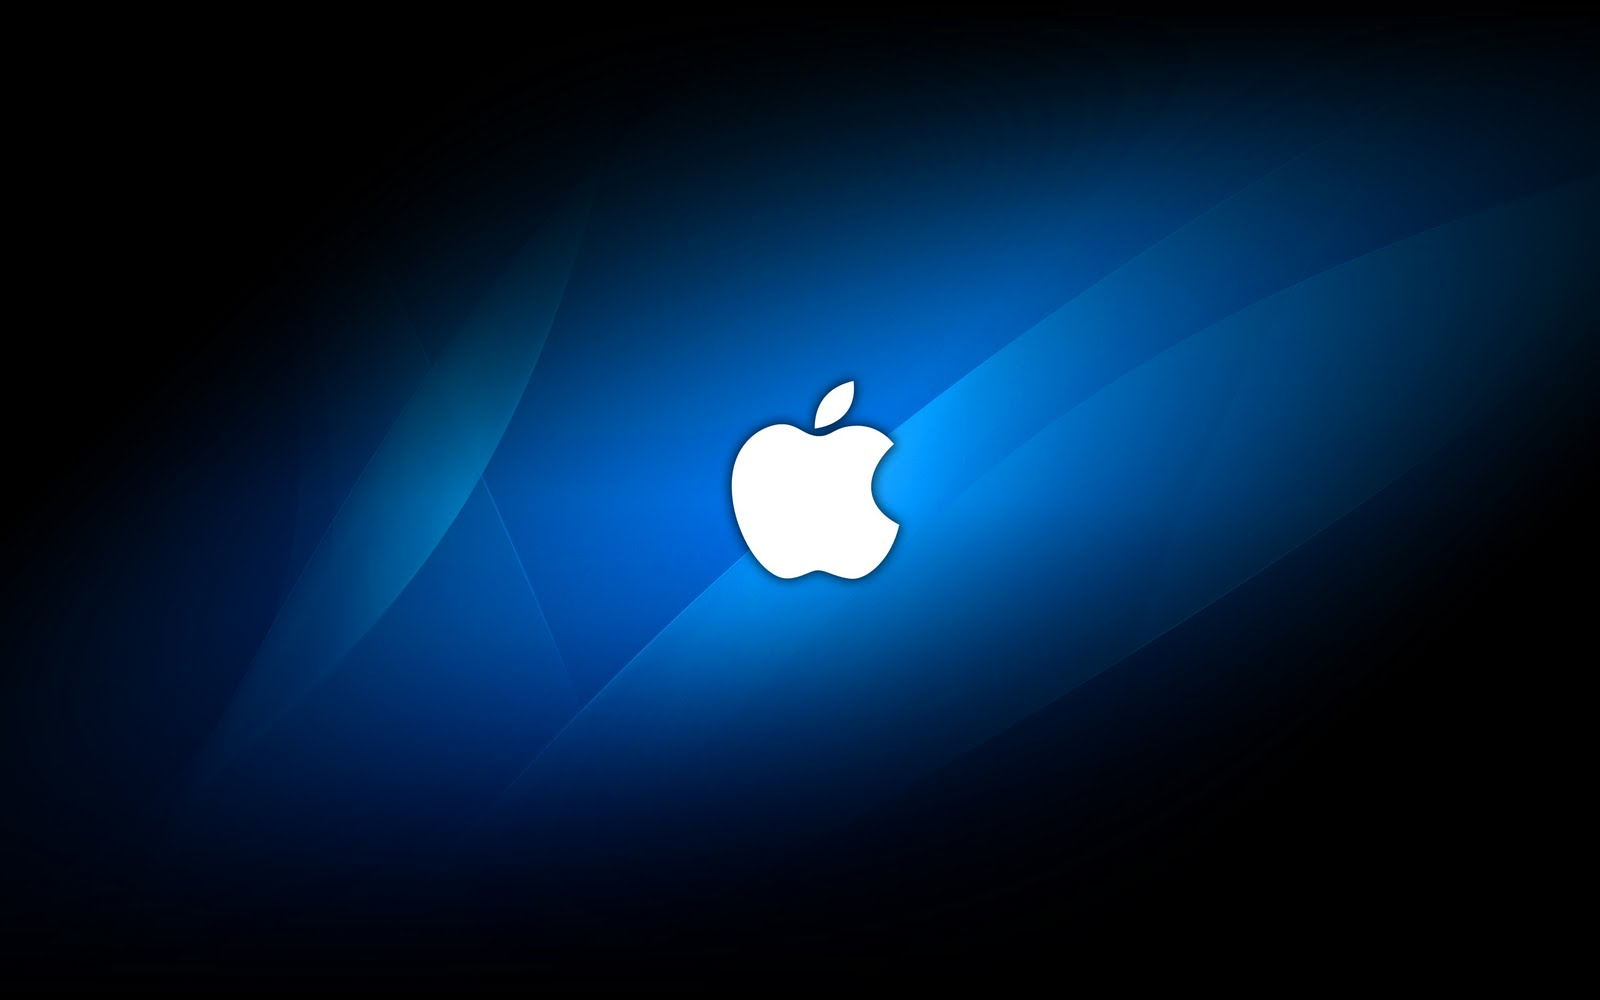 Wallpapers Highdefination Apple HD Wallpapers